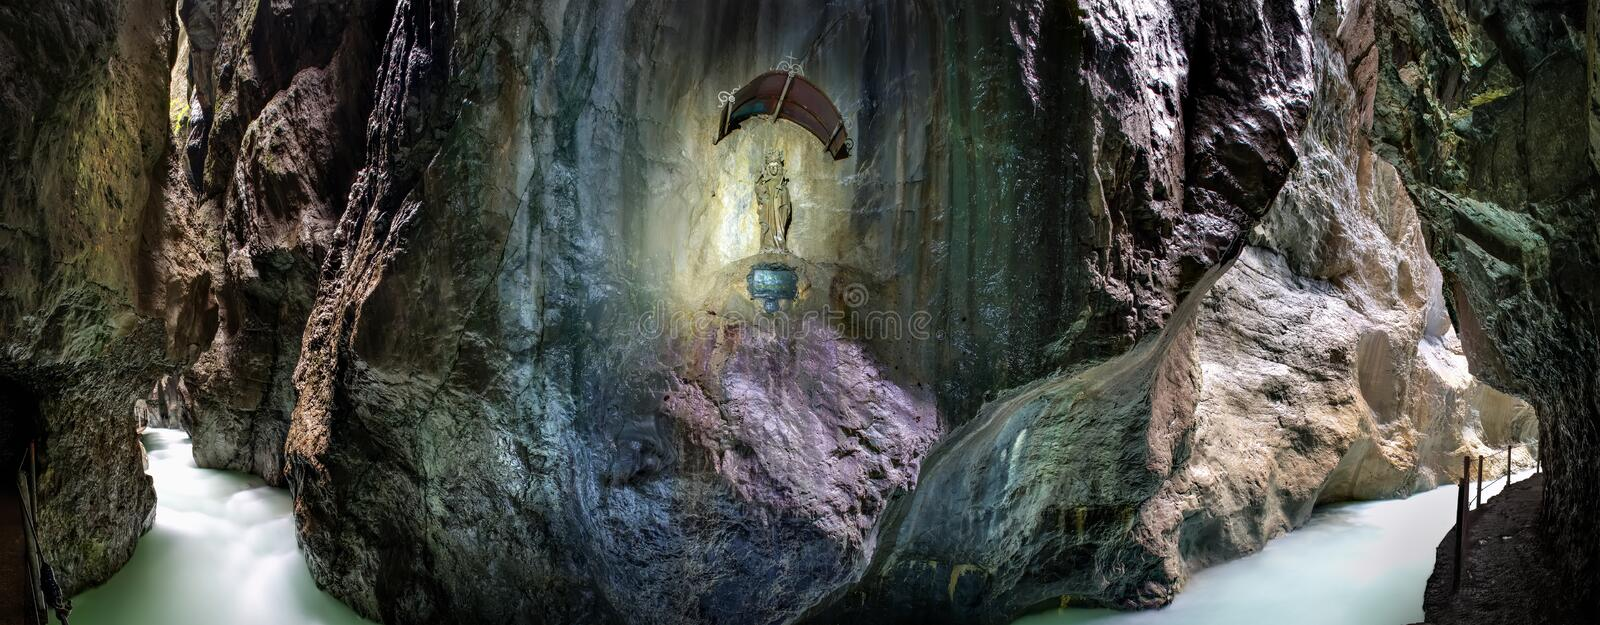 Panorama Partnachklamm. Panorama image of river Partnachklamm with Maria statue in Garmisch-Partenkirchen, Germany royalty free stock photo